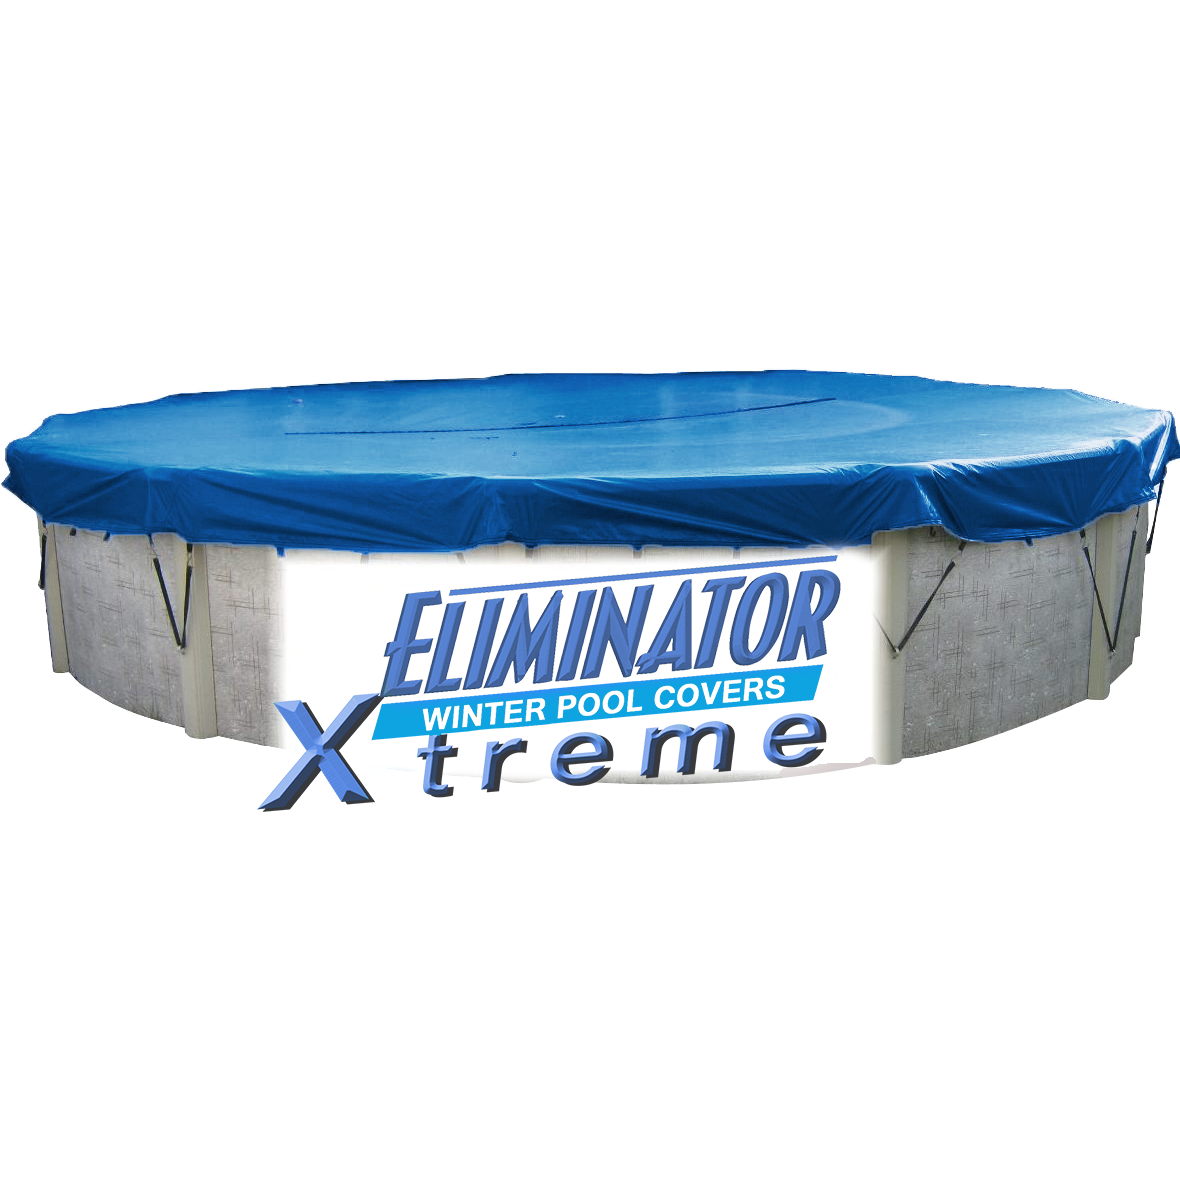 12 ft Round Eliminator Xtreme Pool Winter Cover